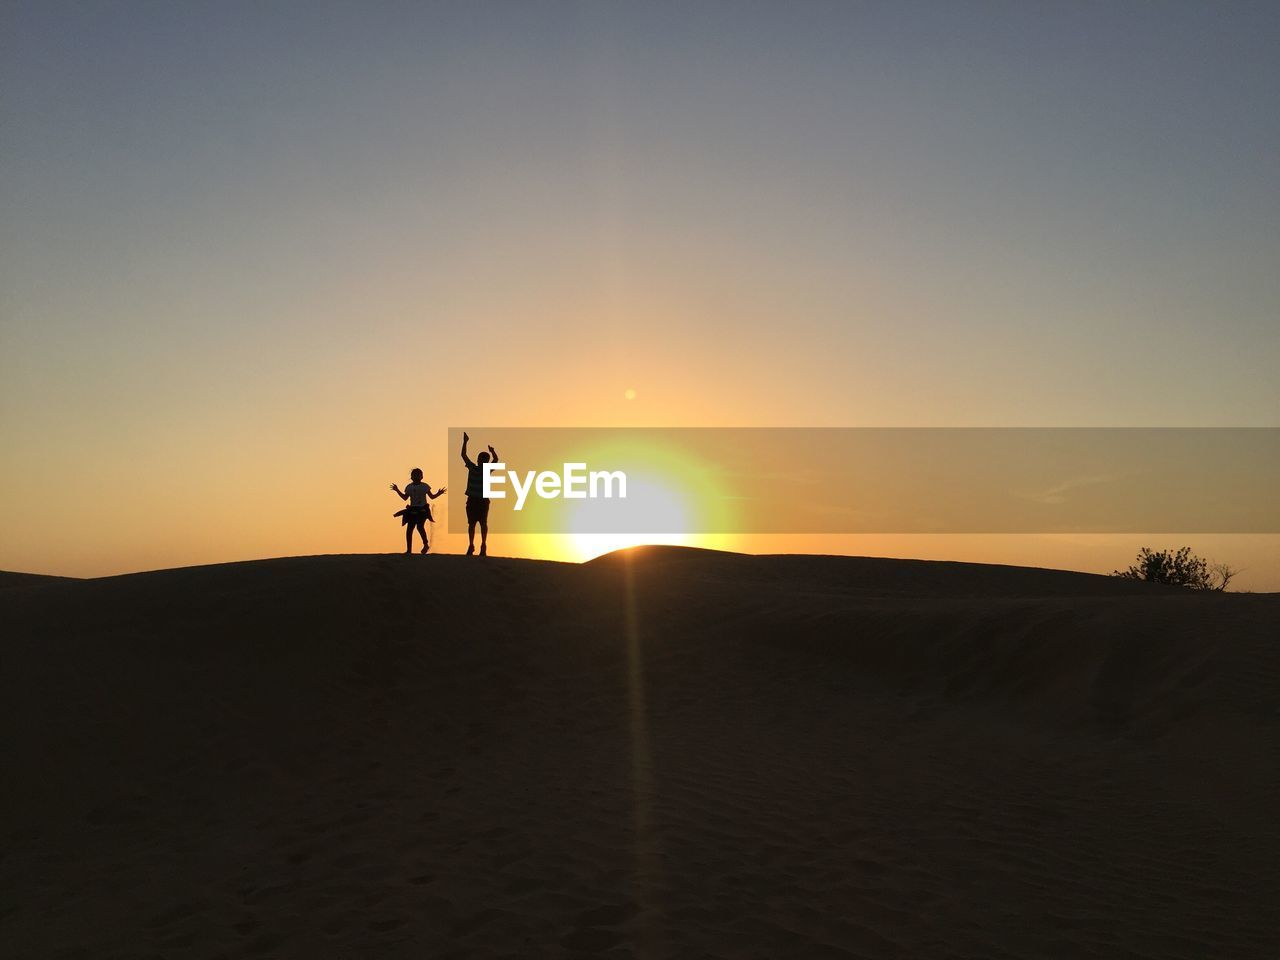 sunset, sky, silhouette, scenics - nature, land, orange color, sun, real people, beauty in nature, nature, tranquil scene, lifestyles, leisure activity, sunlight, tranquility, men, two people, landscape, non-urban scene, sand, outdoors, lens flare, arid climate